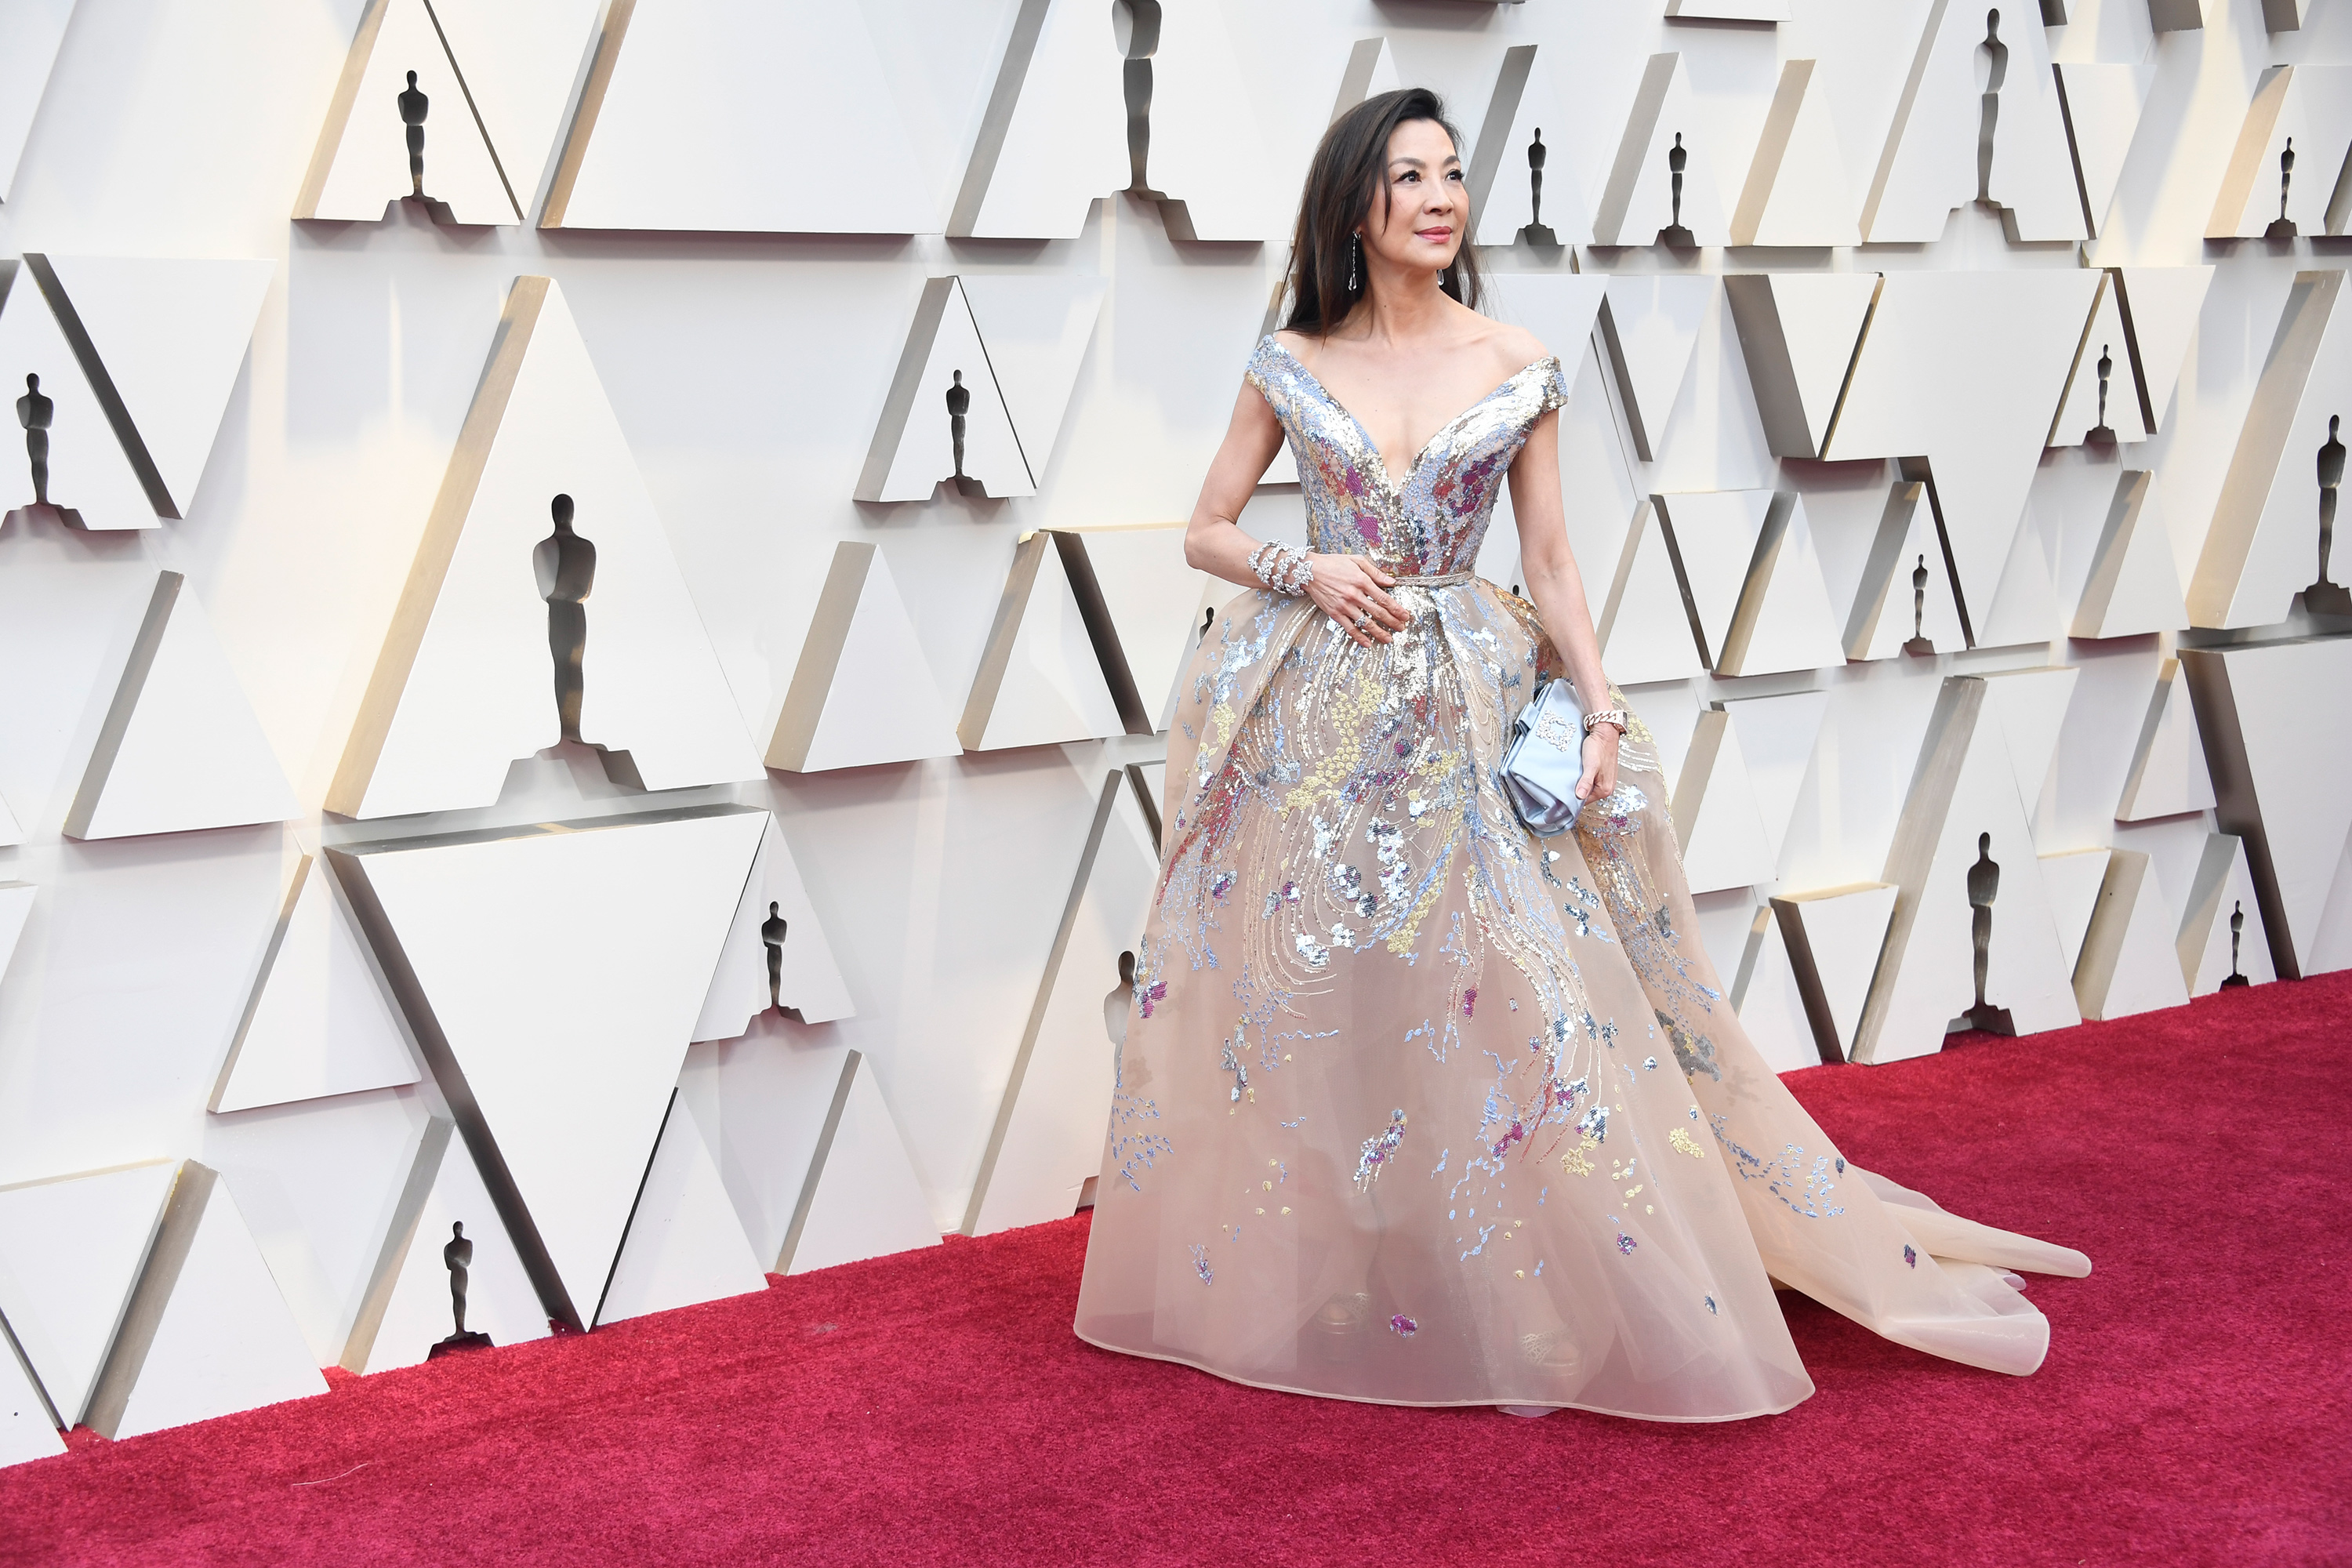 Red carpet fashion at the Oscars 2019 - CNN Style